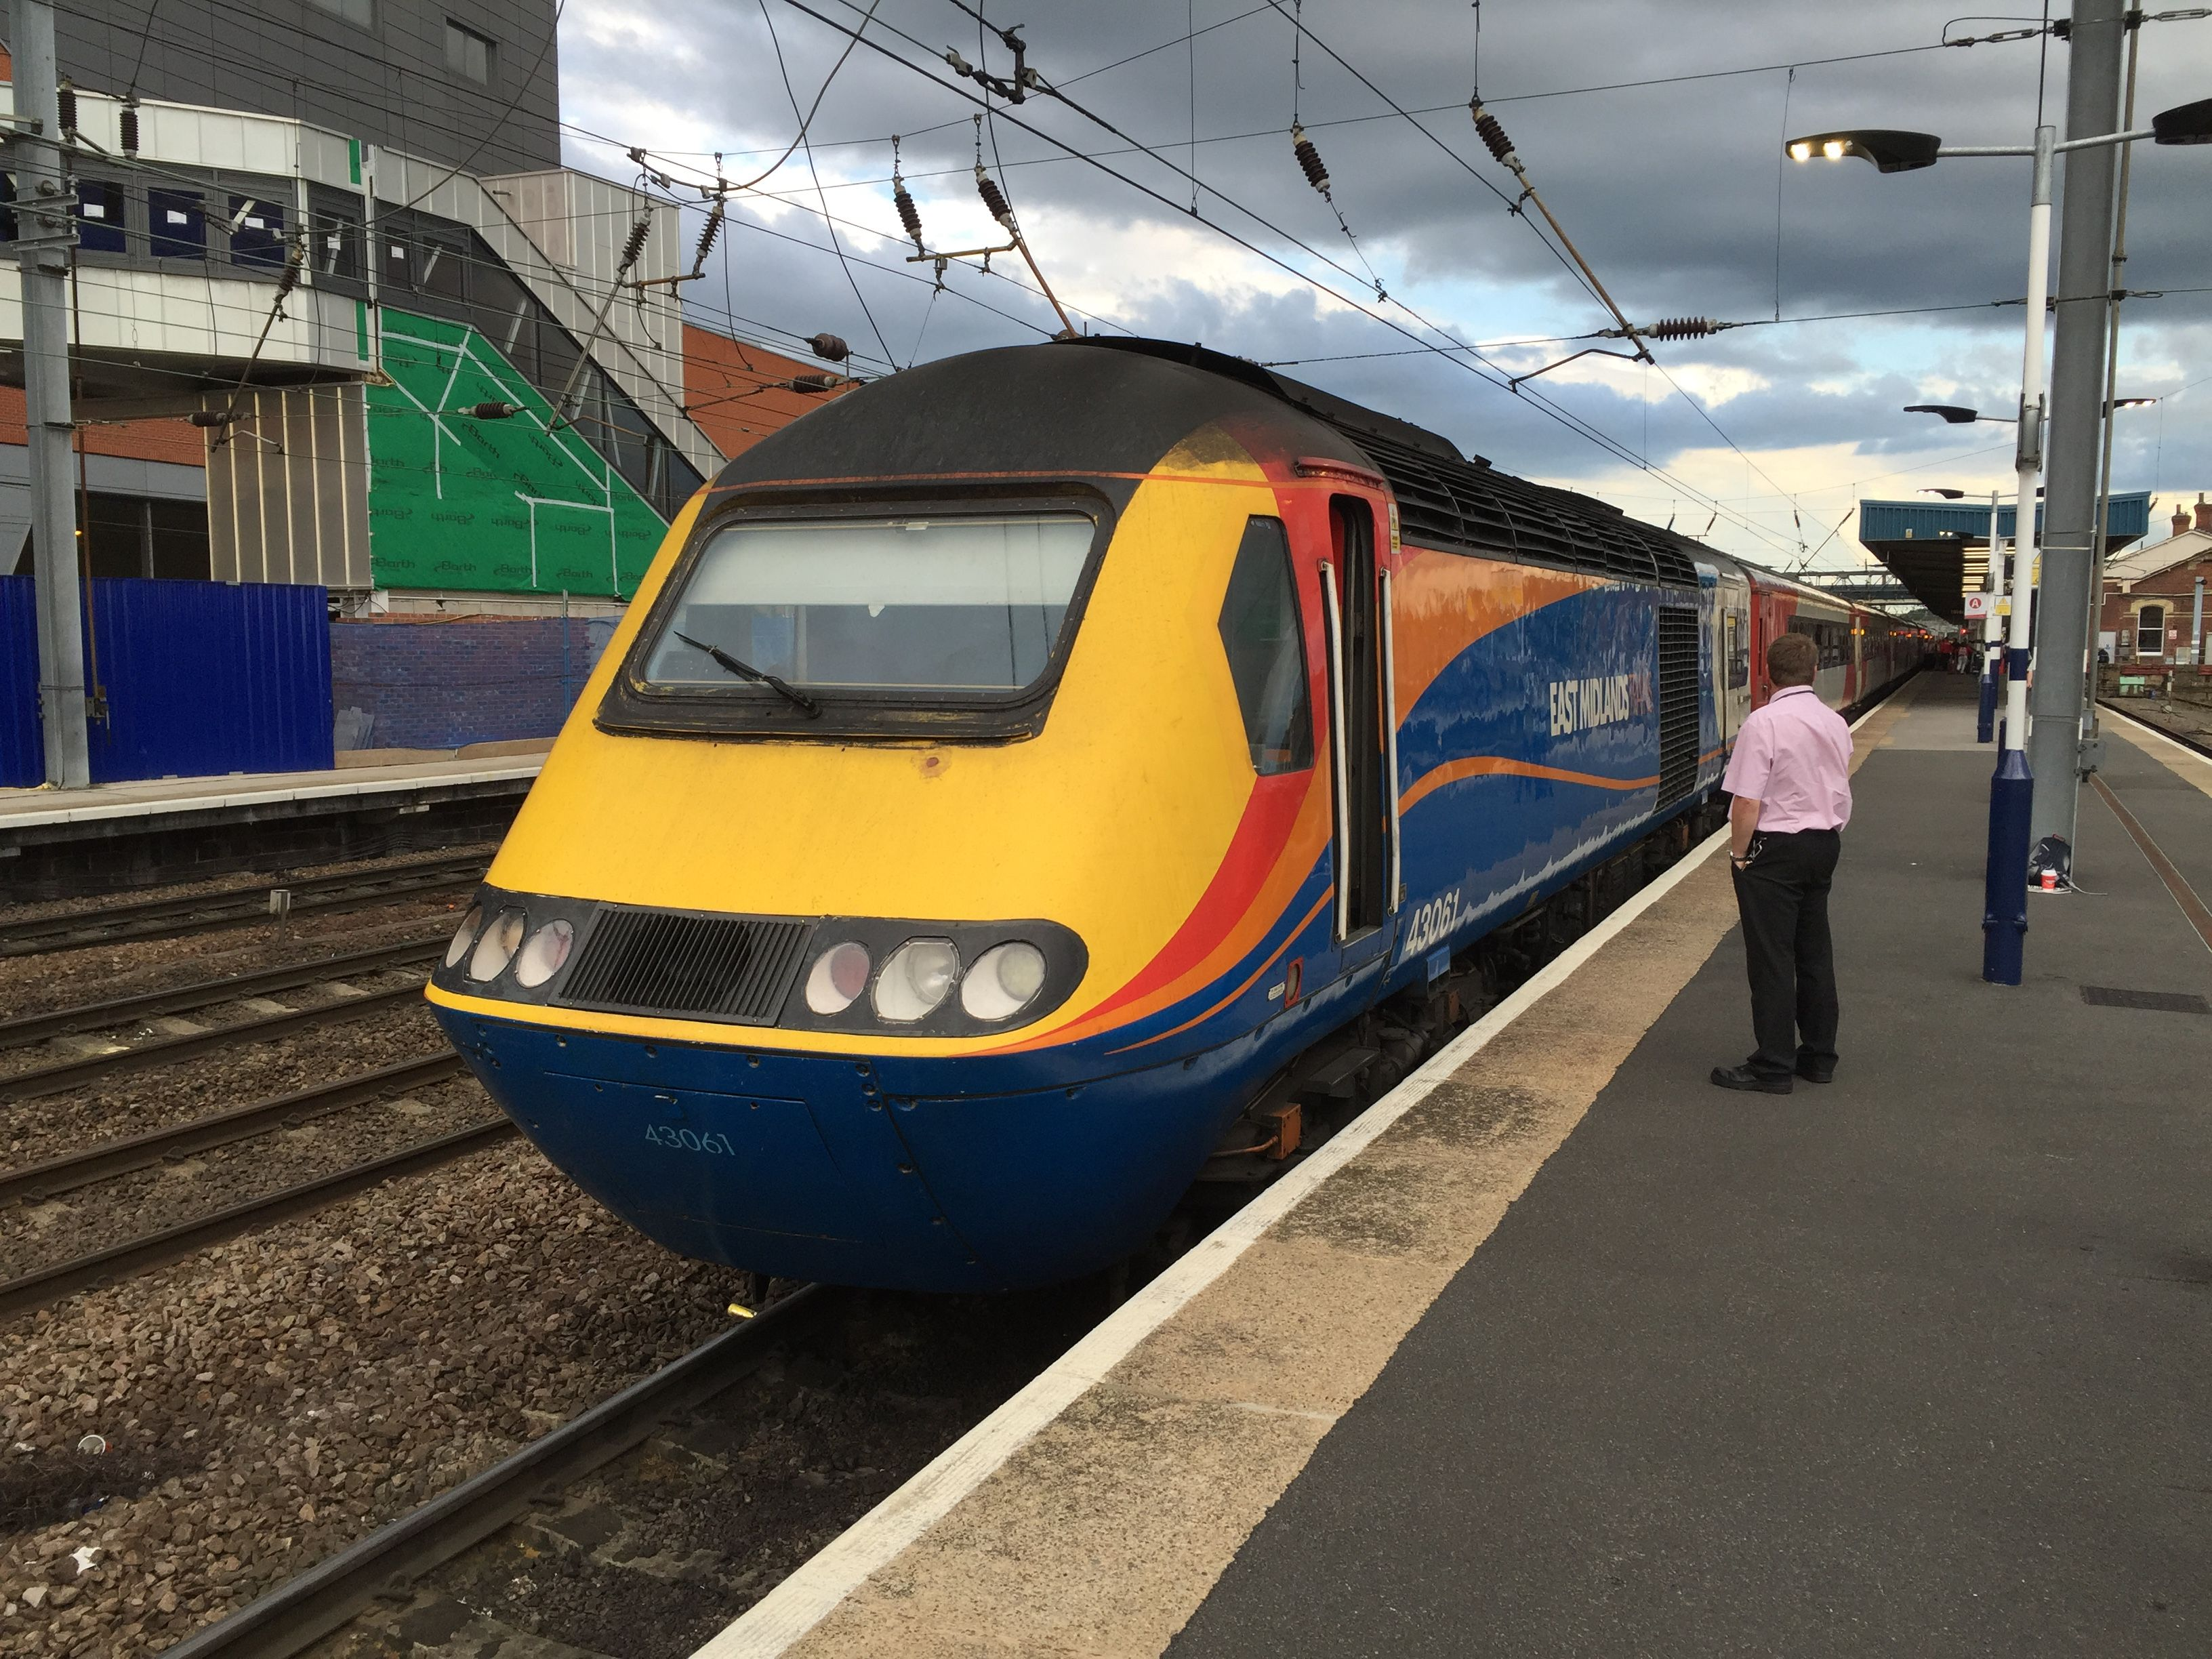 East Midlands Trains Hst Powercar 43061 Waits To Depart Doncaster With A Virgin Trains East Coast Train On 24th June 2016 Train Doncaster East Coast